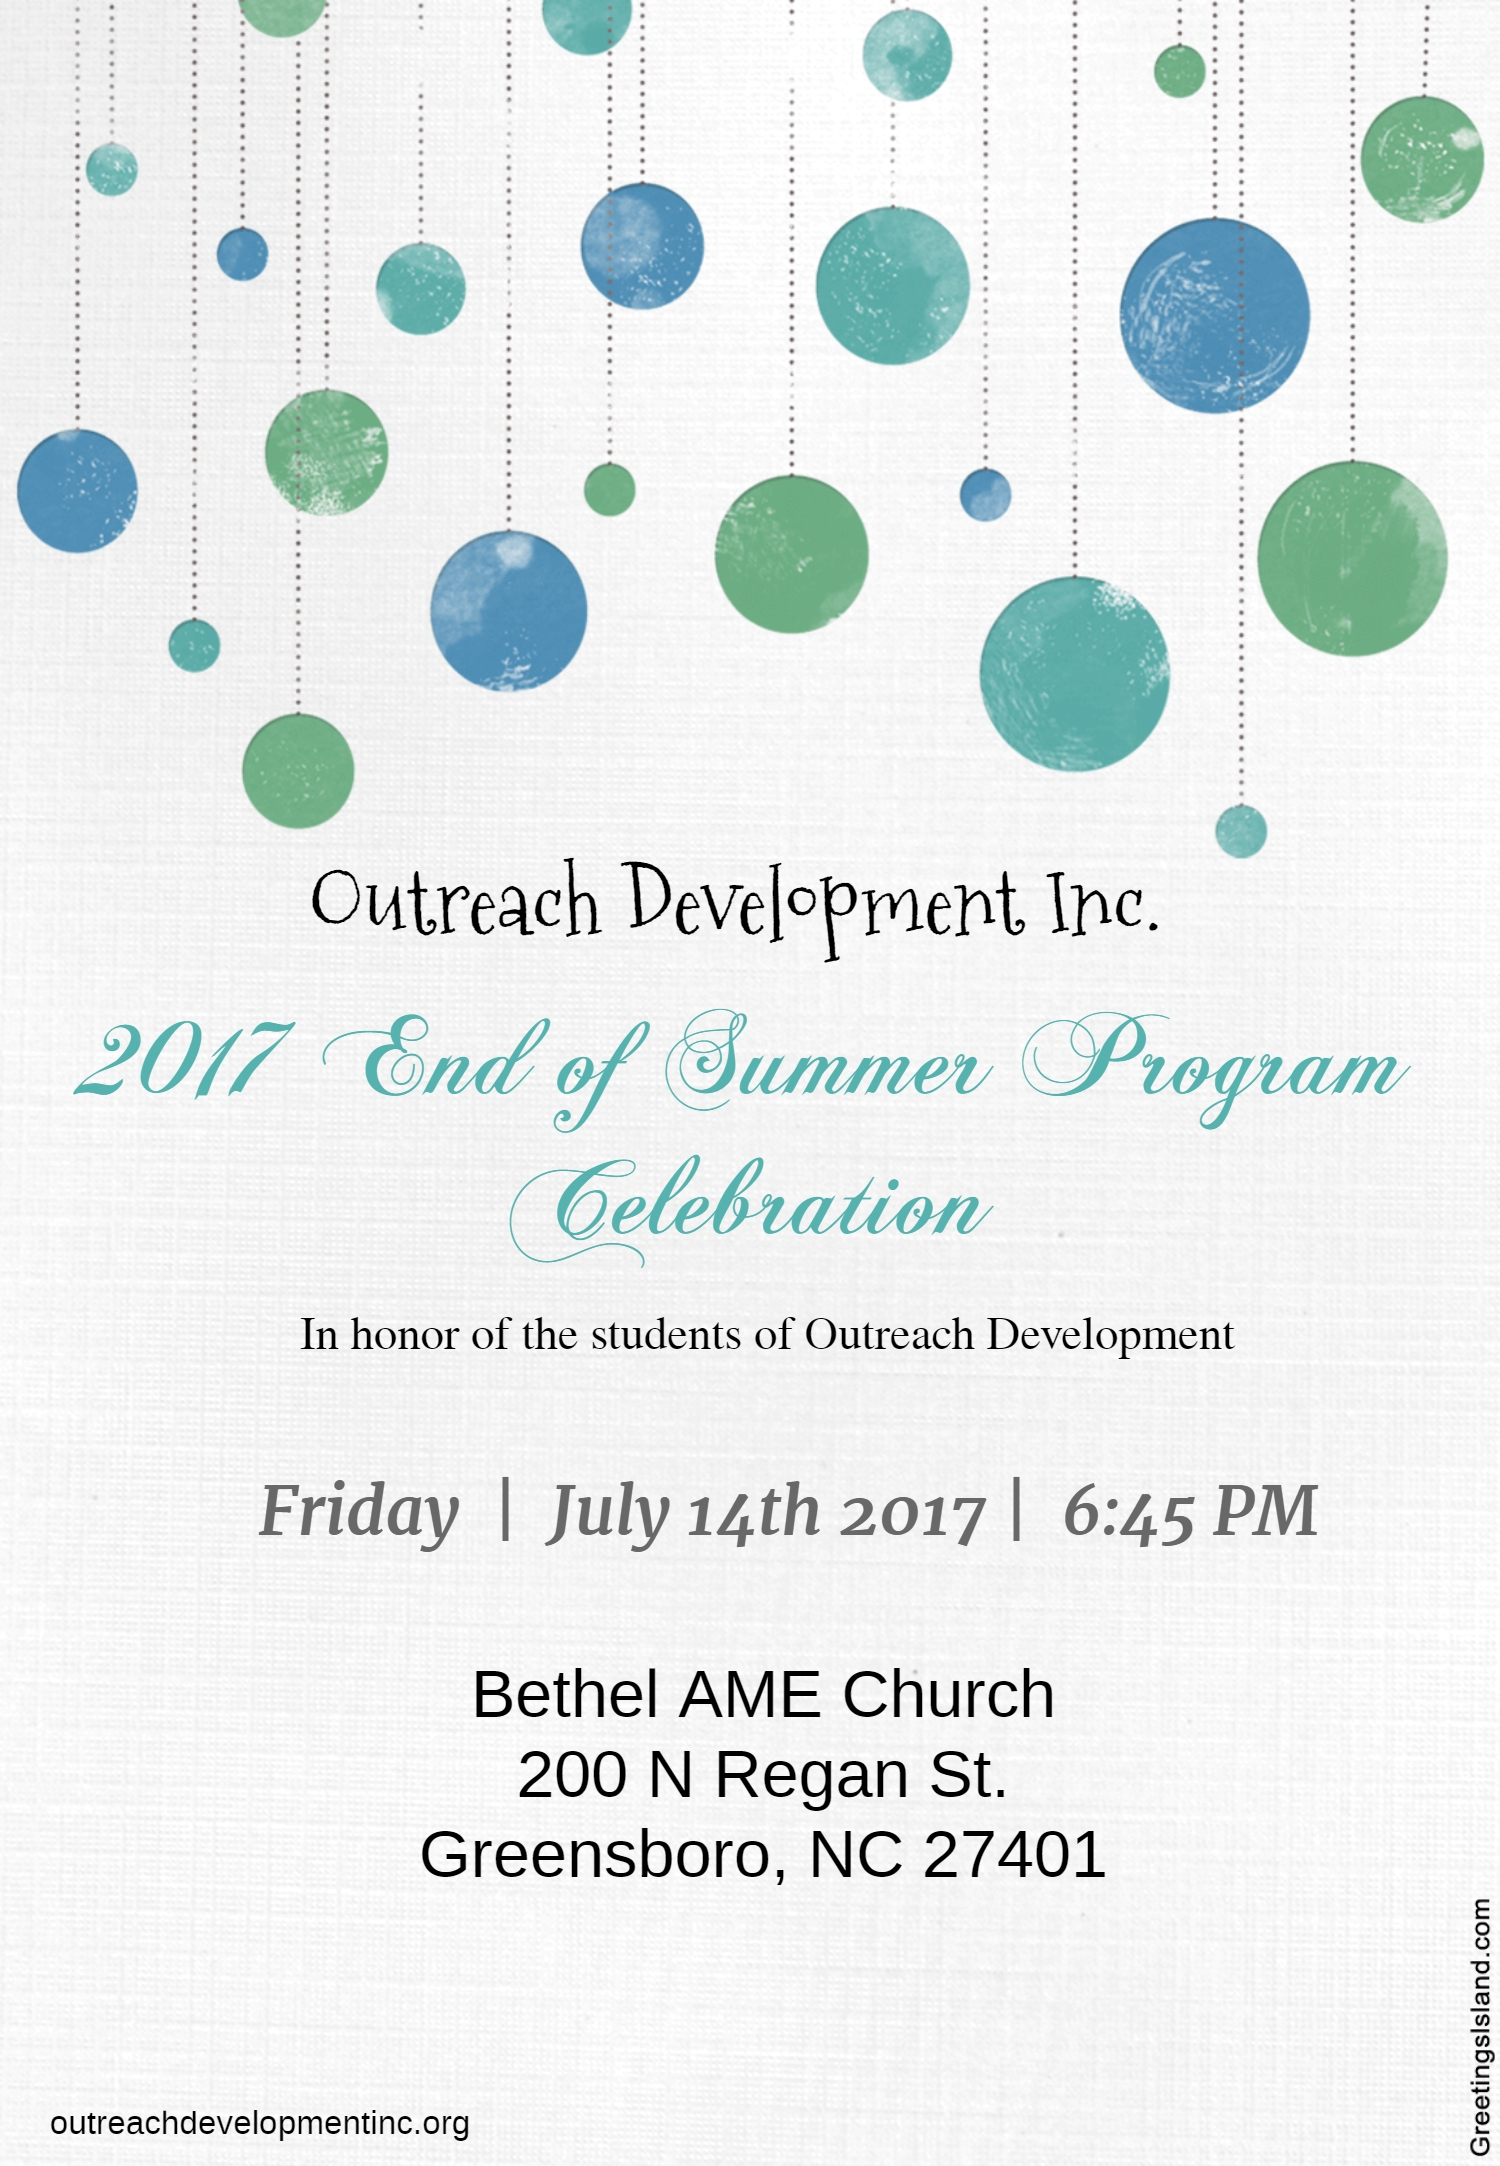 Outreach Development 2017 End of Summer Program Celebration